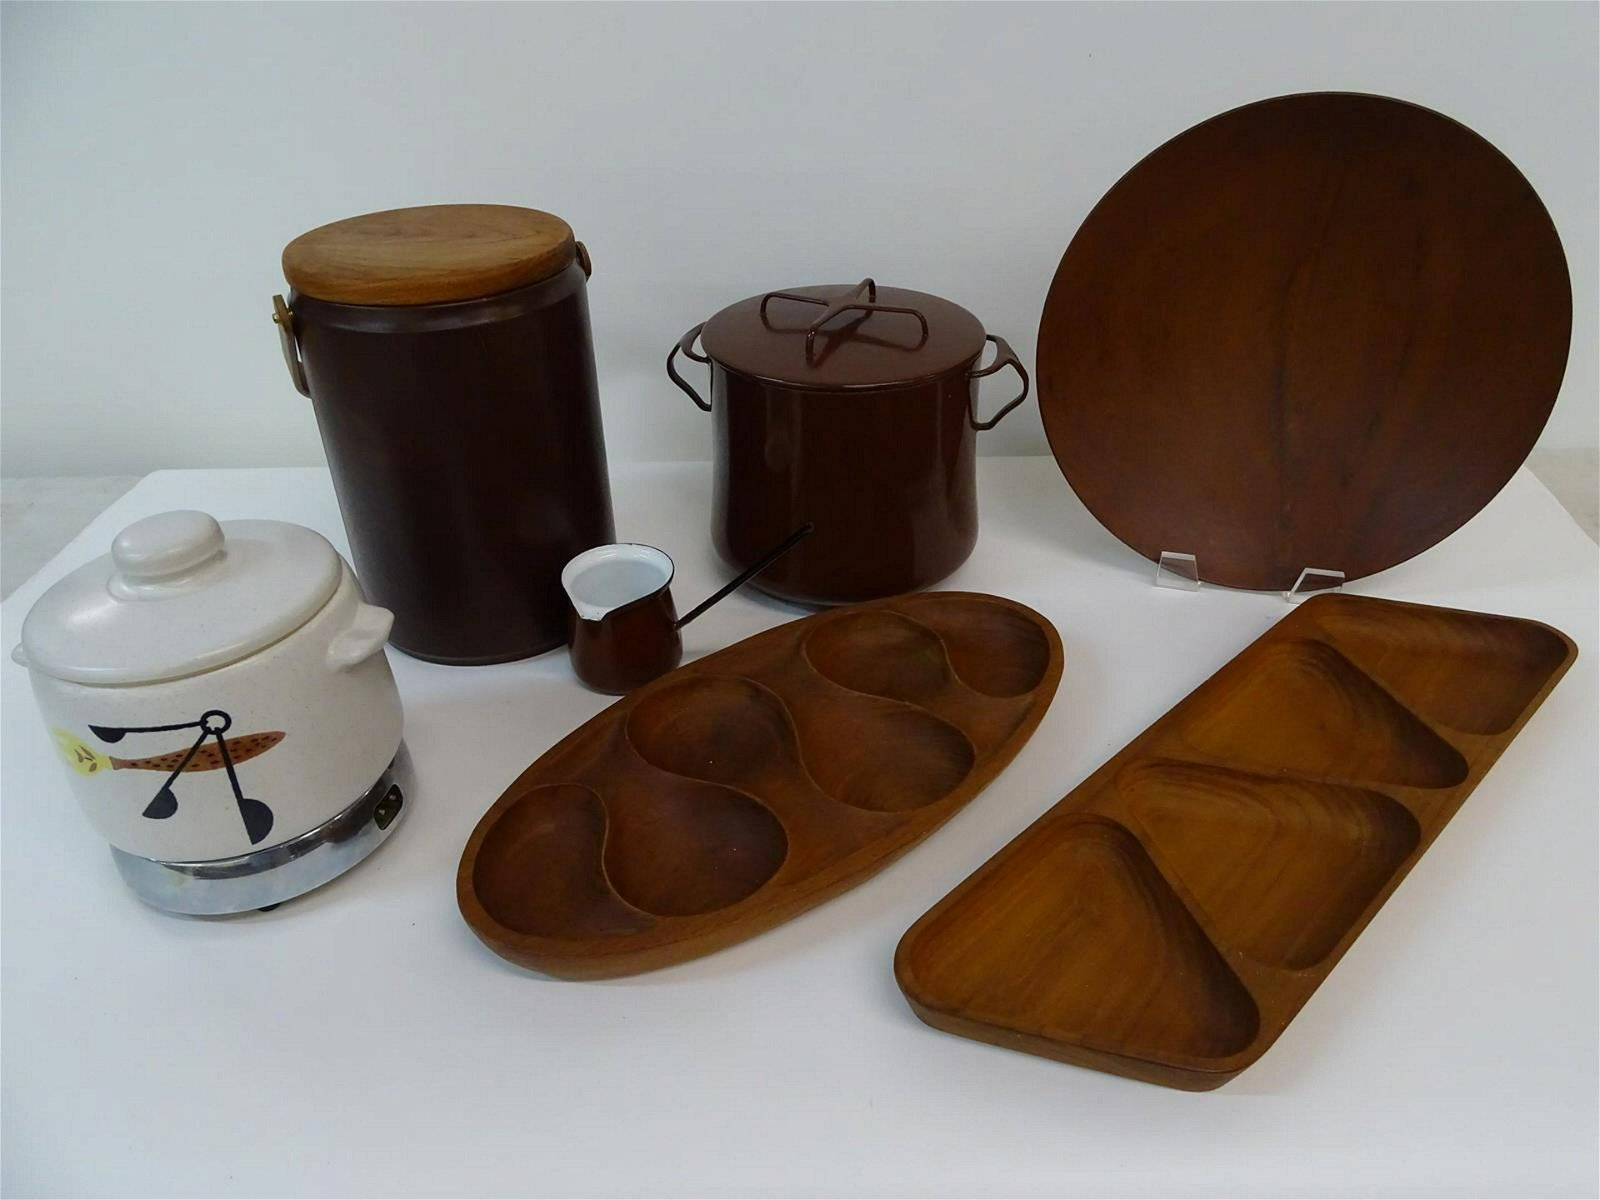 GROUPING OF MID-CENTURY SERVING ITEMS